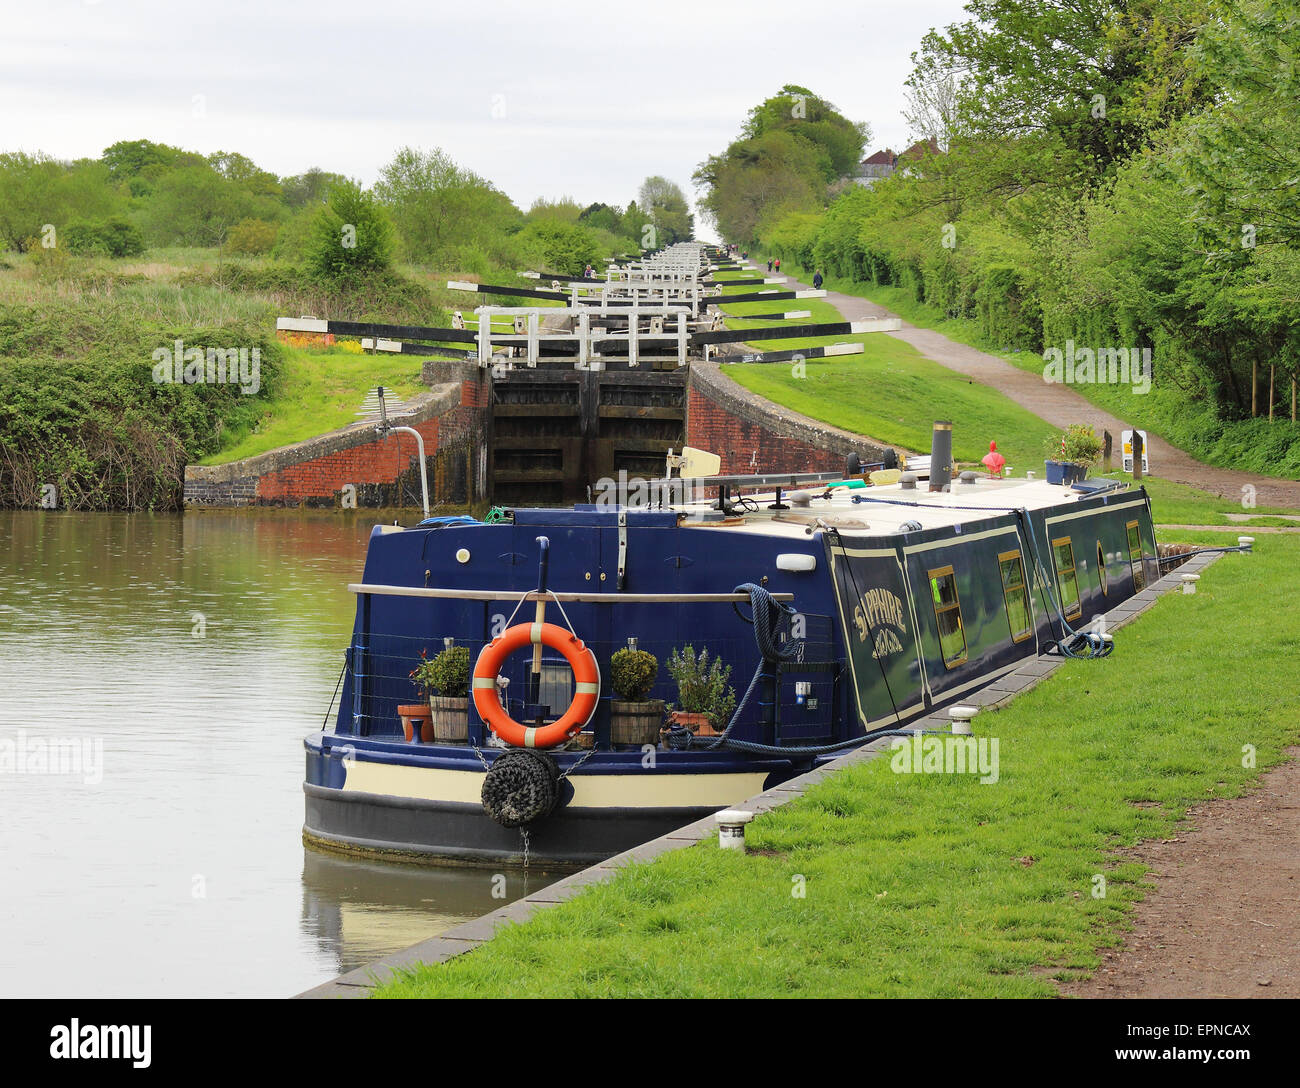 Narrowboats on the Kennett and Avon canal at Devizes Caen Hill Locks - Stock Image